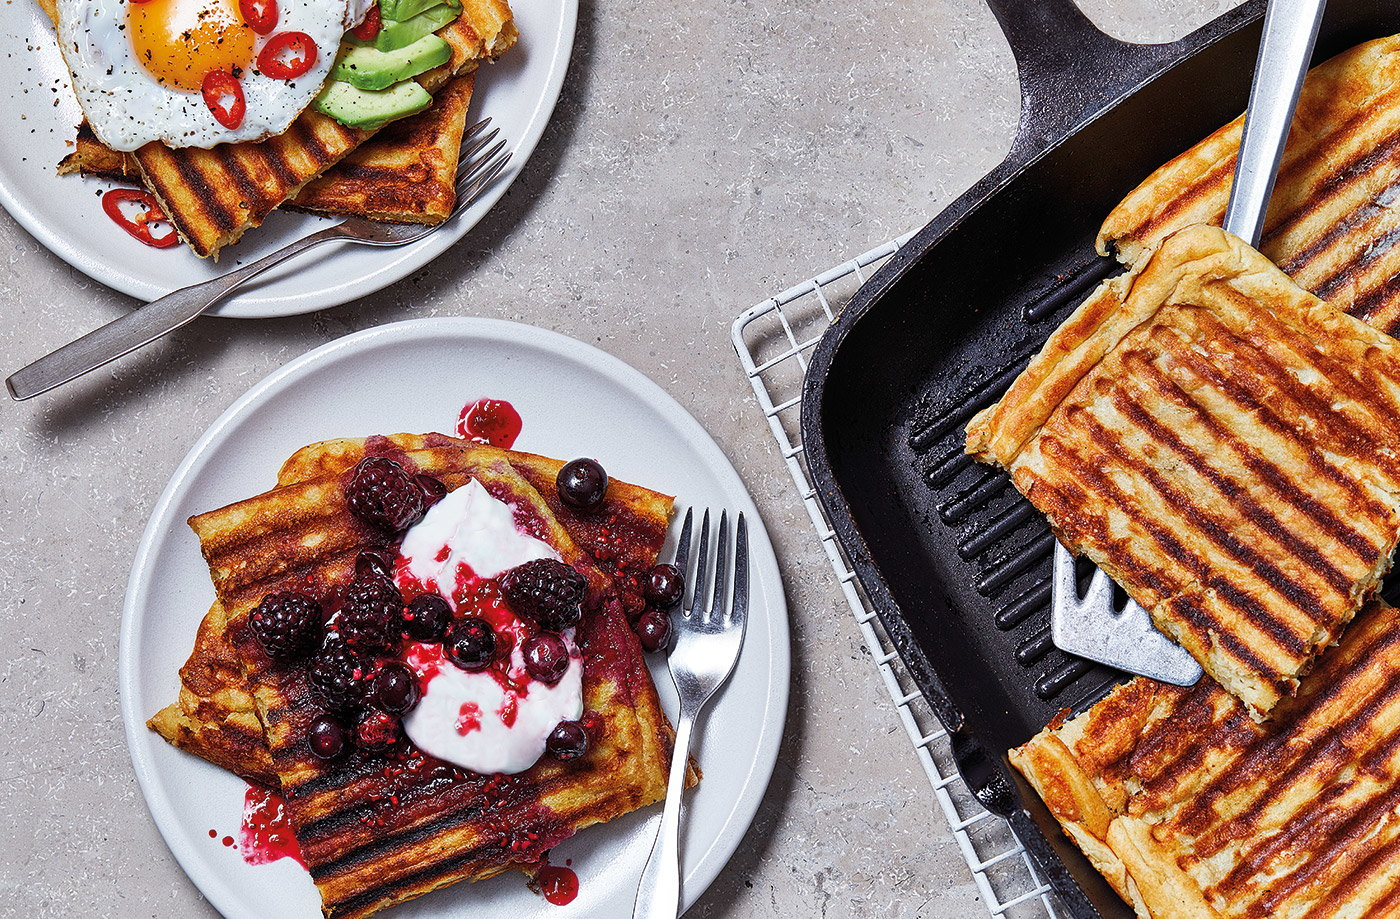 Easy griddled waffles recipe